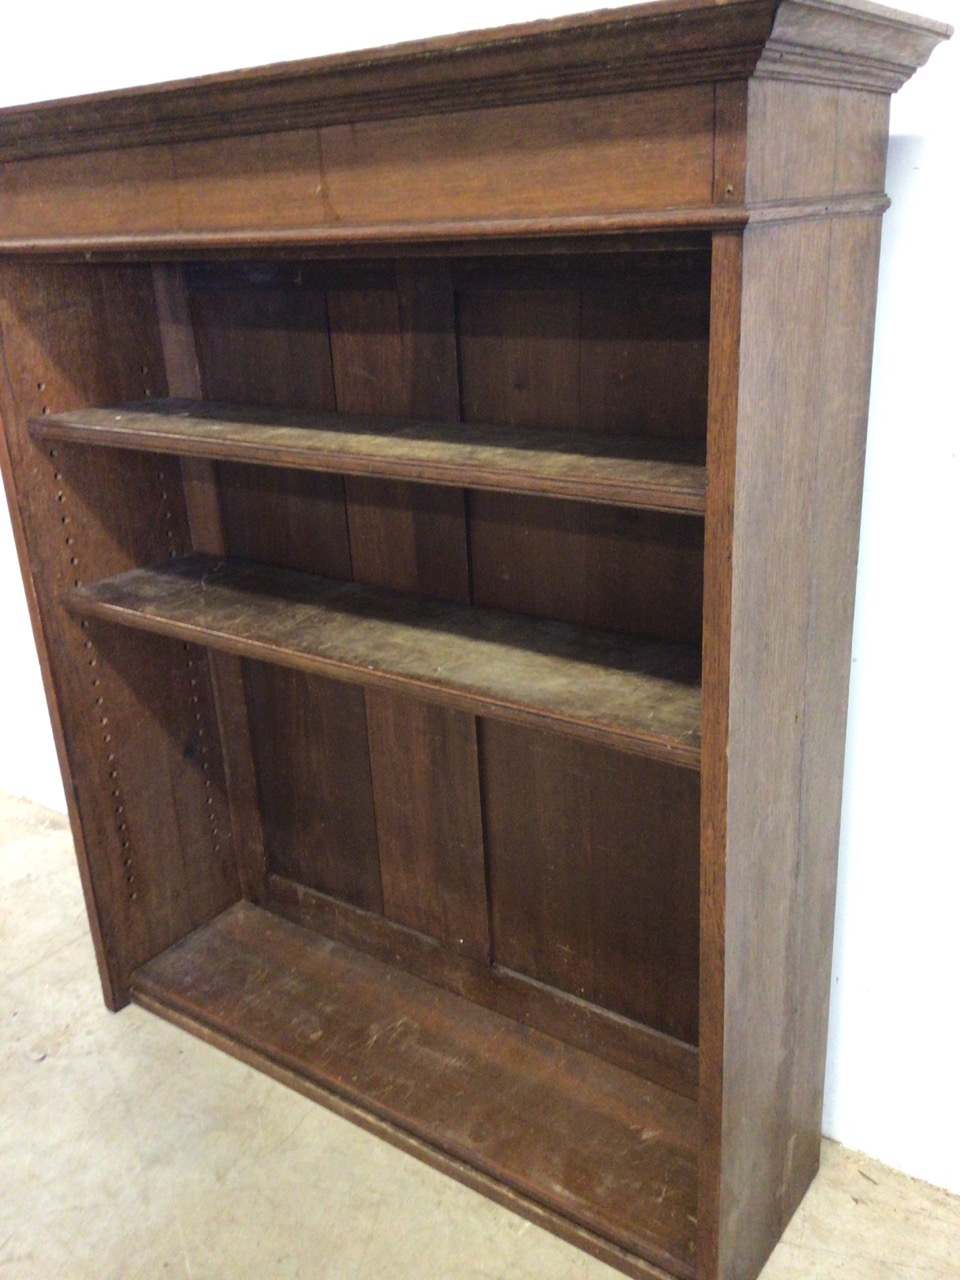 A set of early 20th century bookshelves. - Image 2 of 5